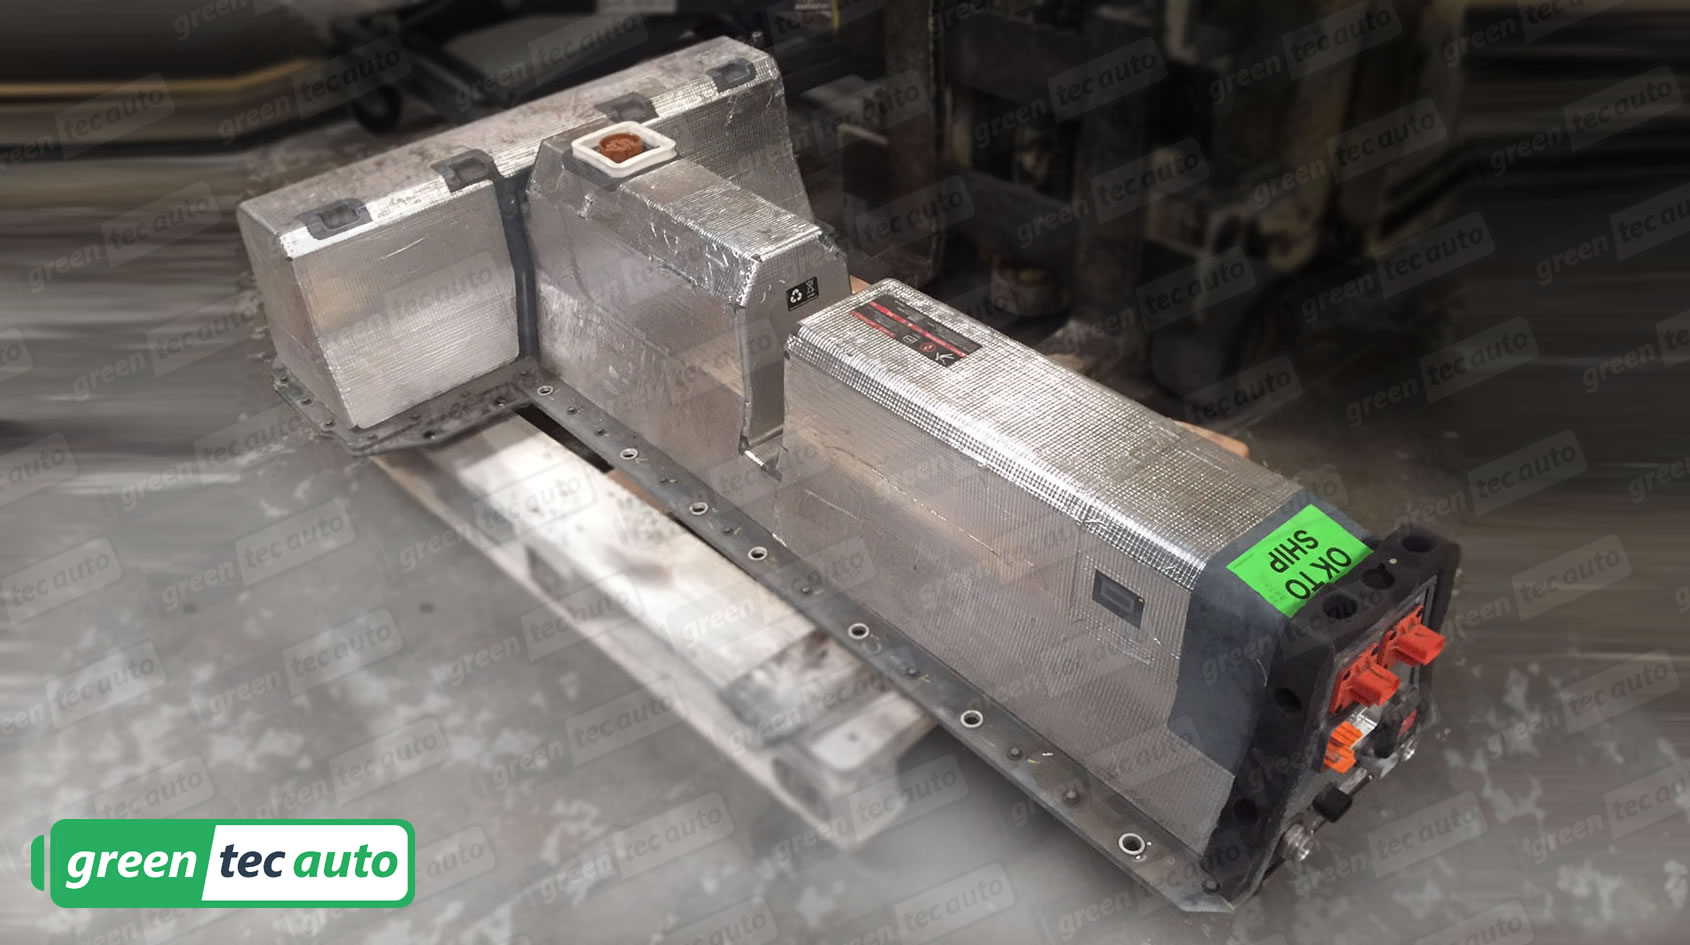 Chevy Volt 2kwh Battery Pack Modules Assembly Greentec Auto